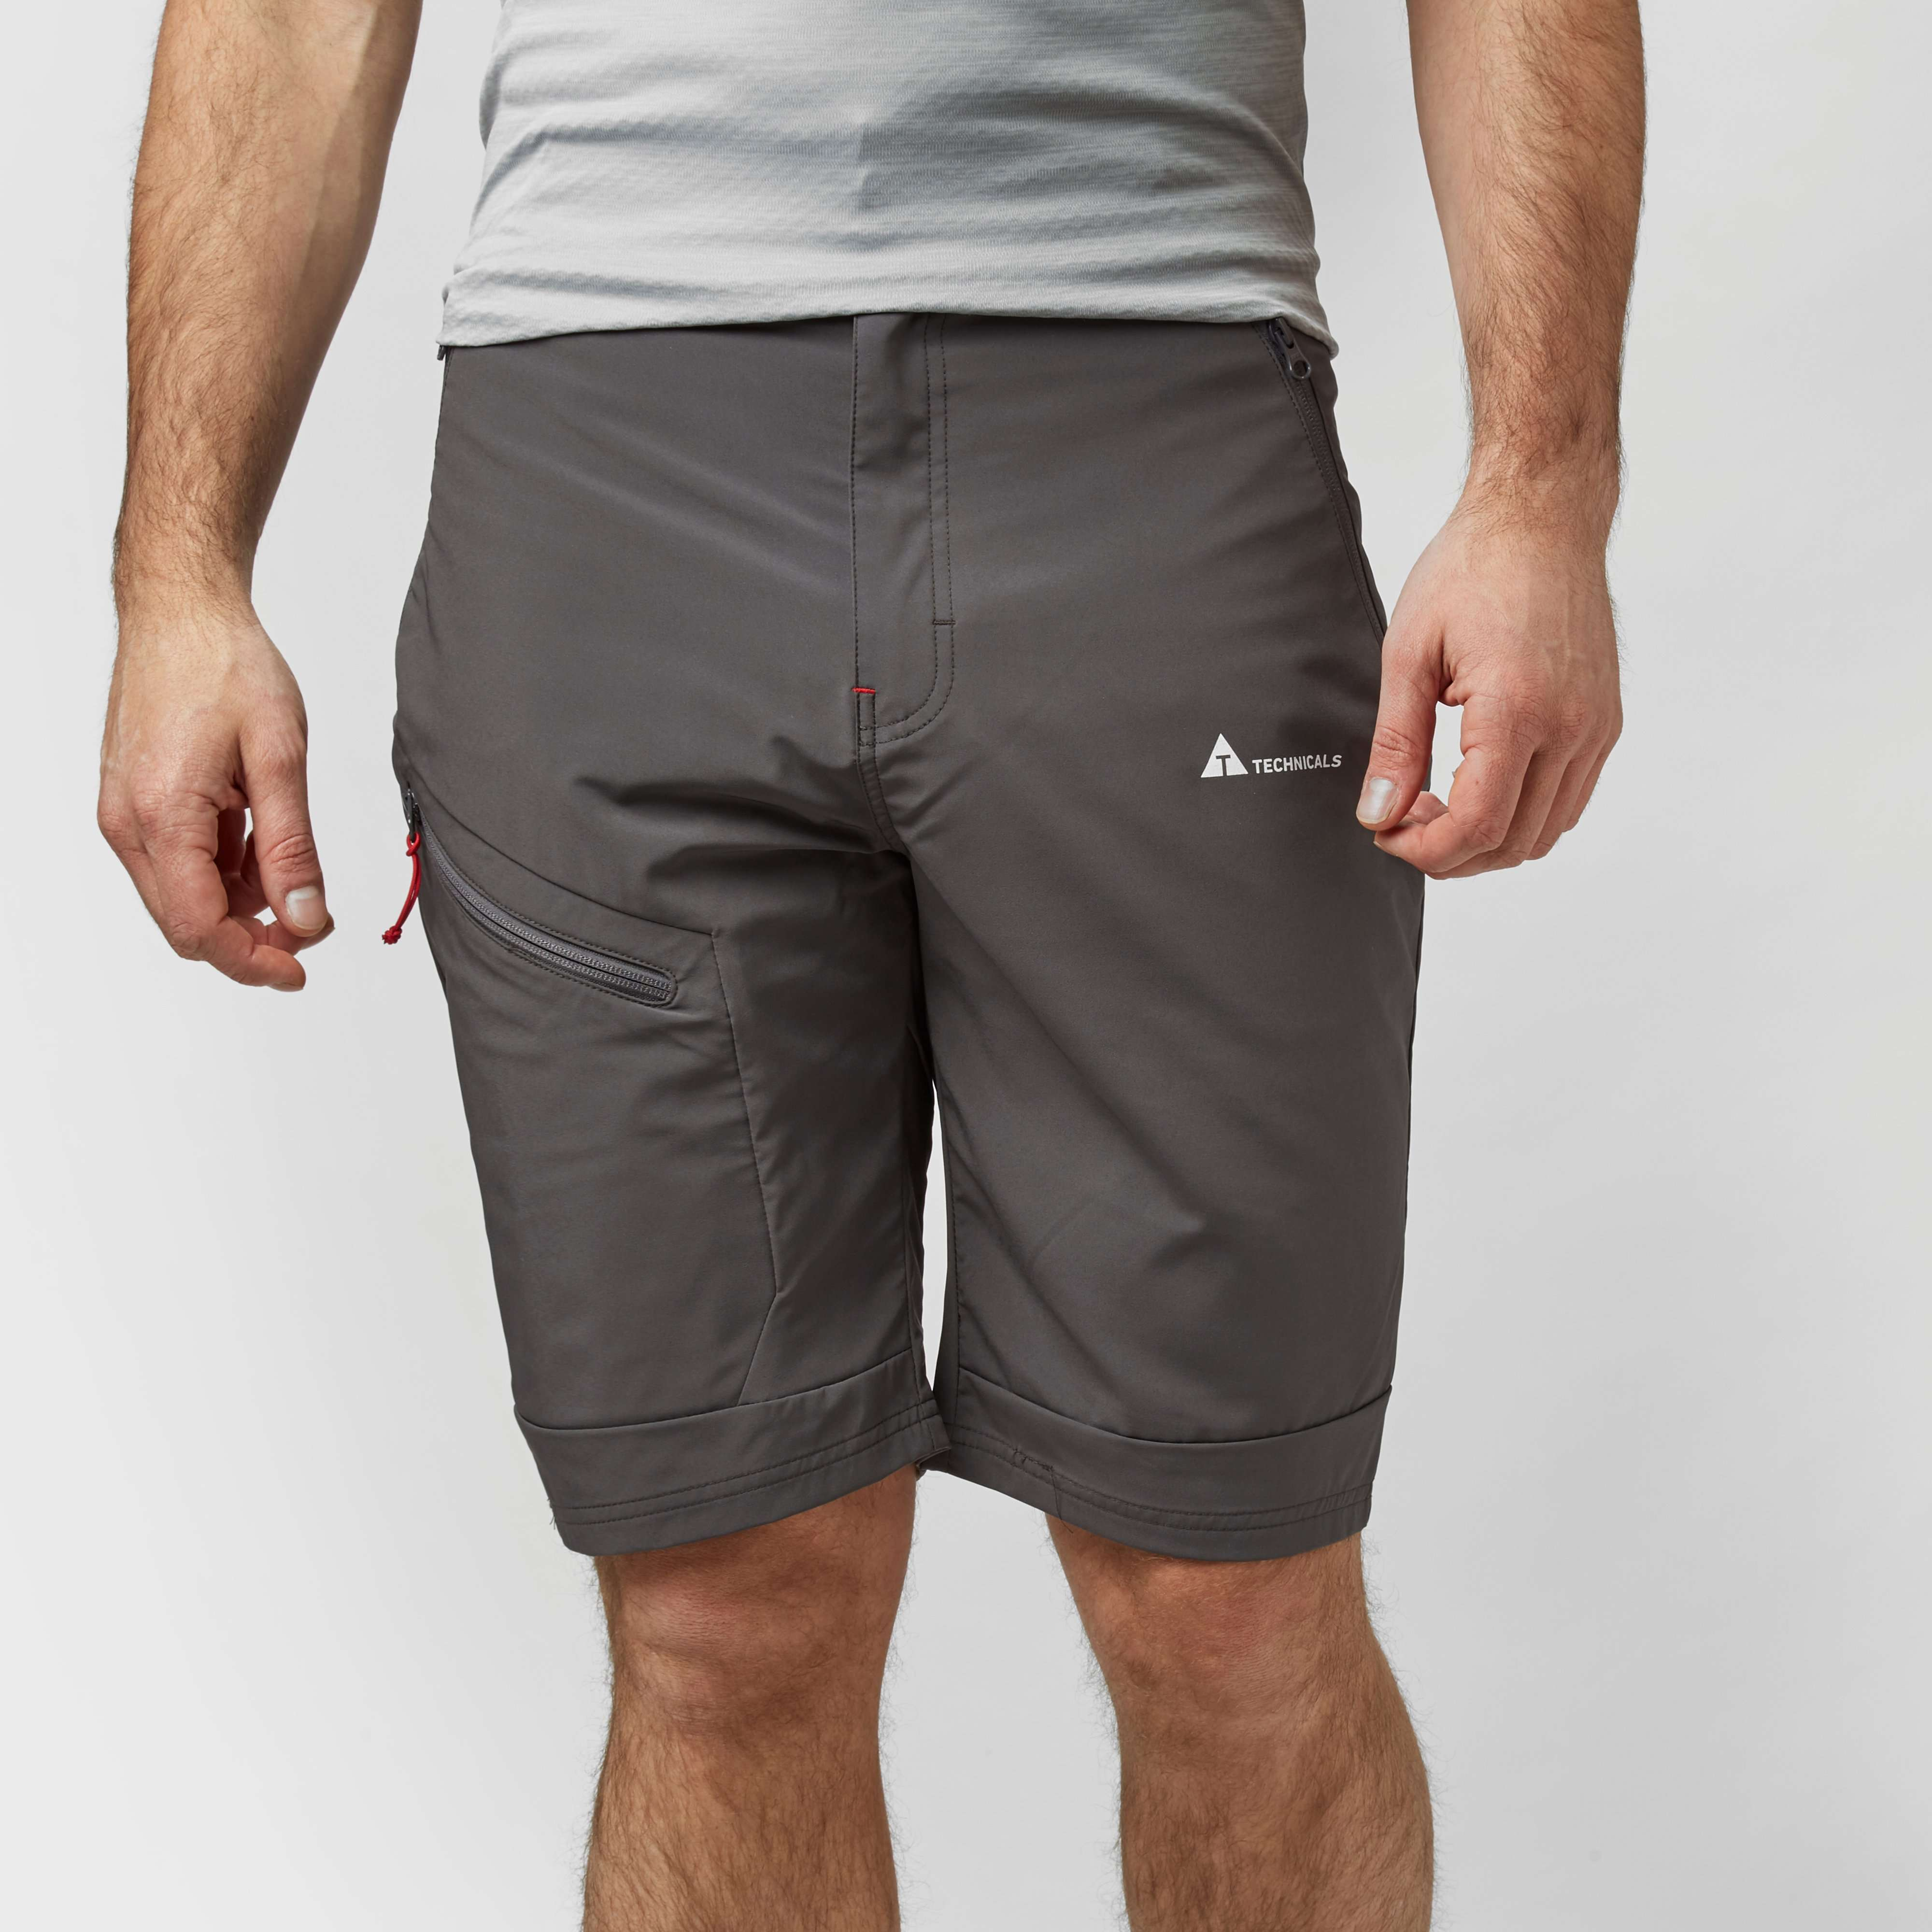 TECHNICALS Men's Vital Hiking Shorts